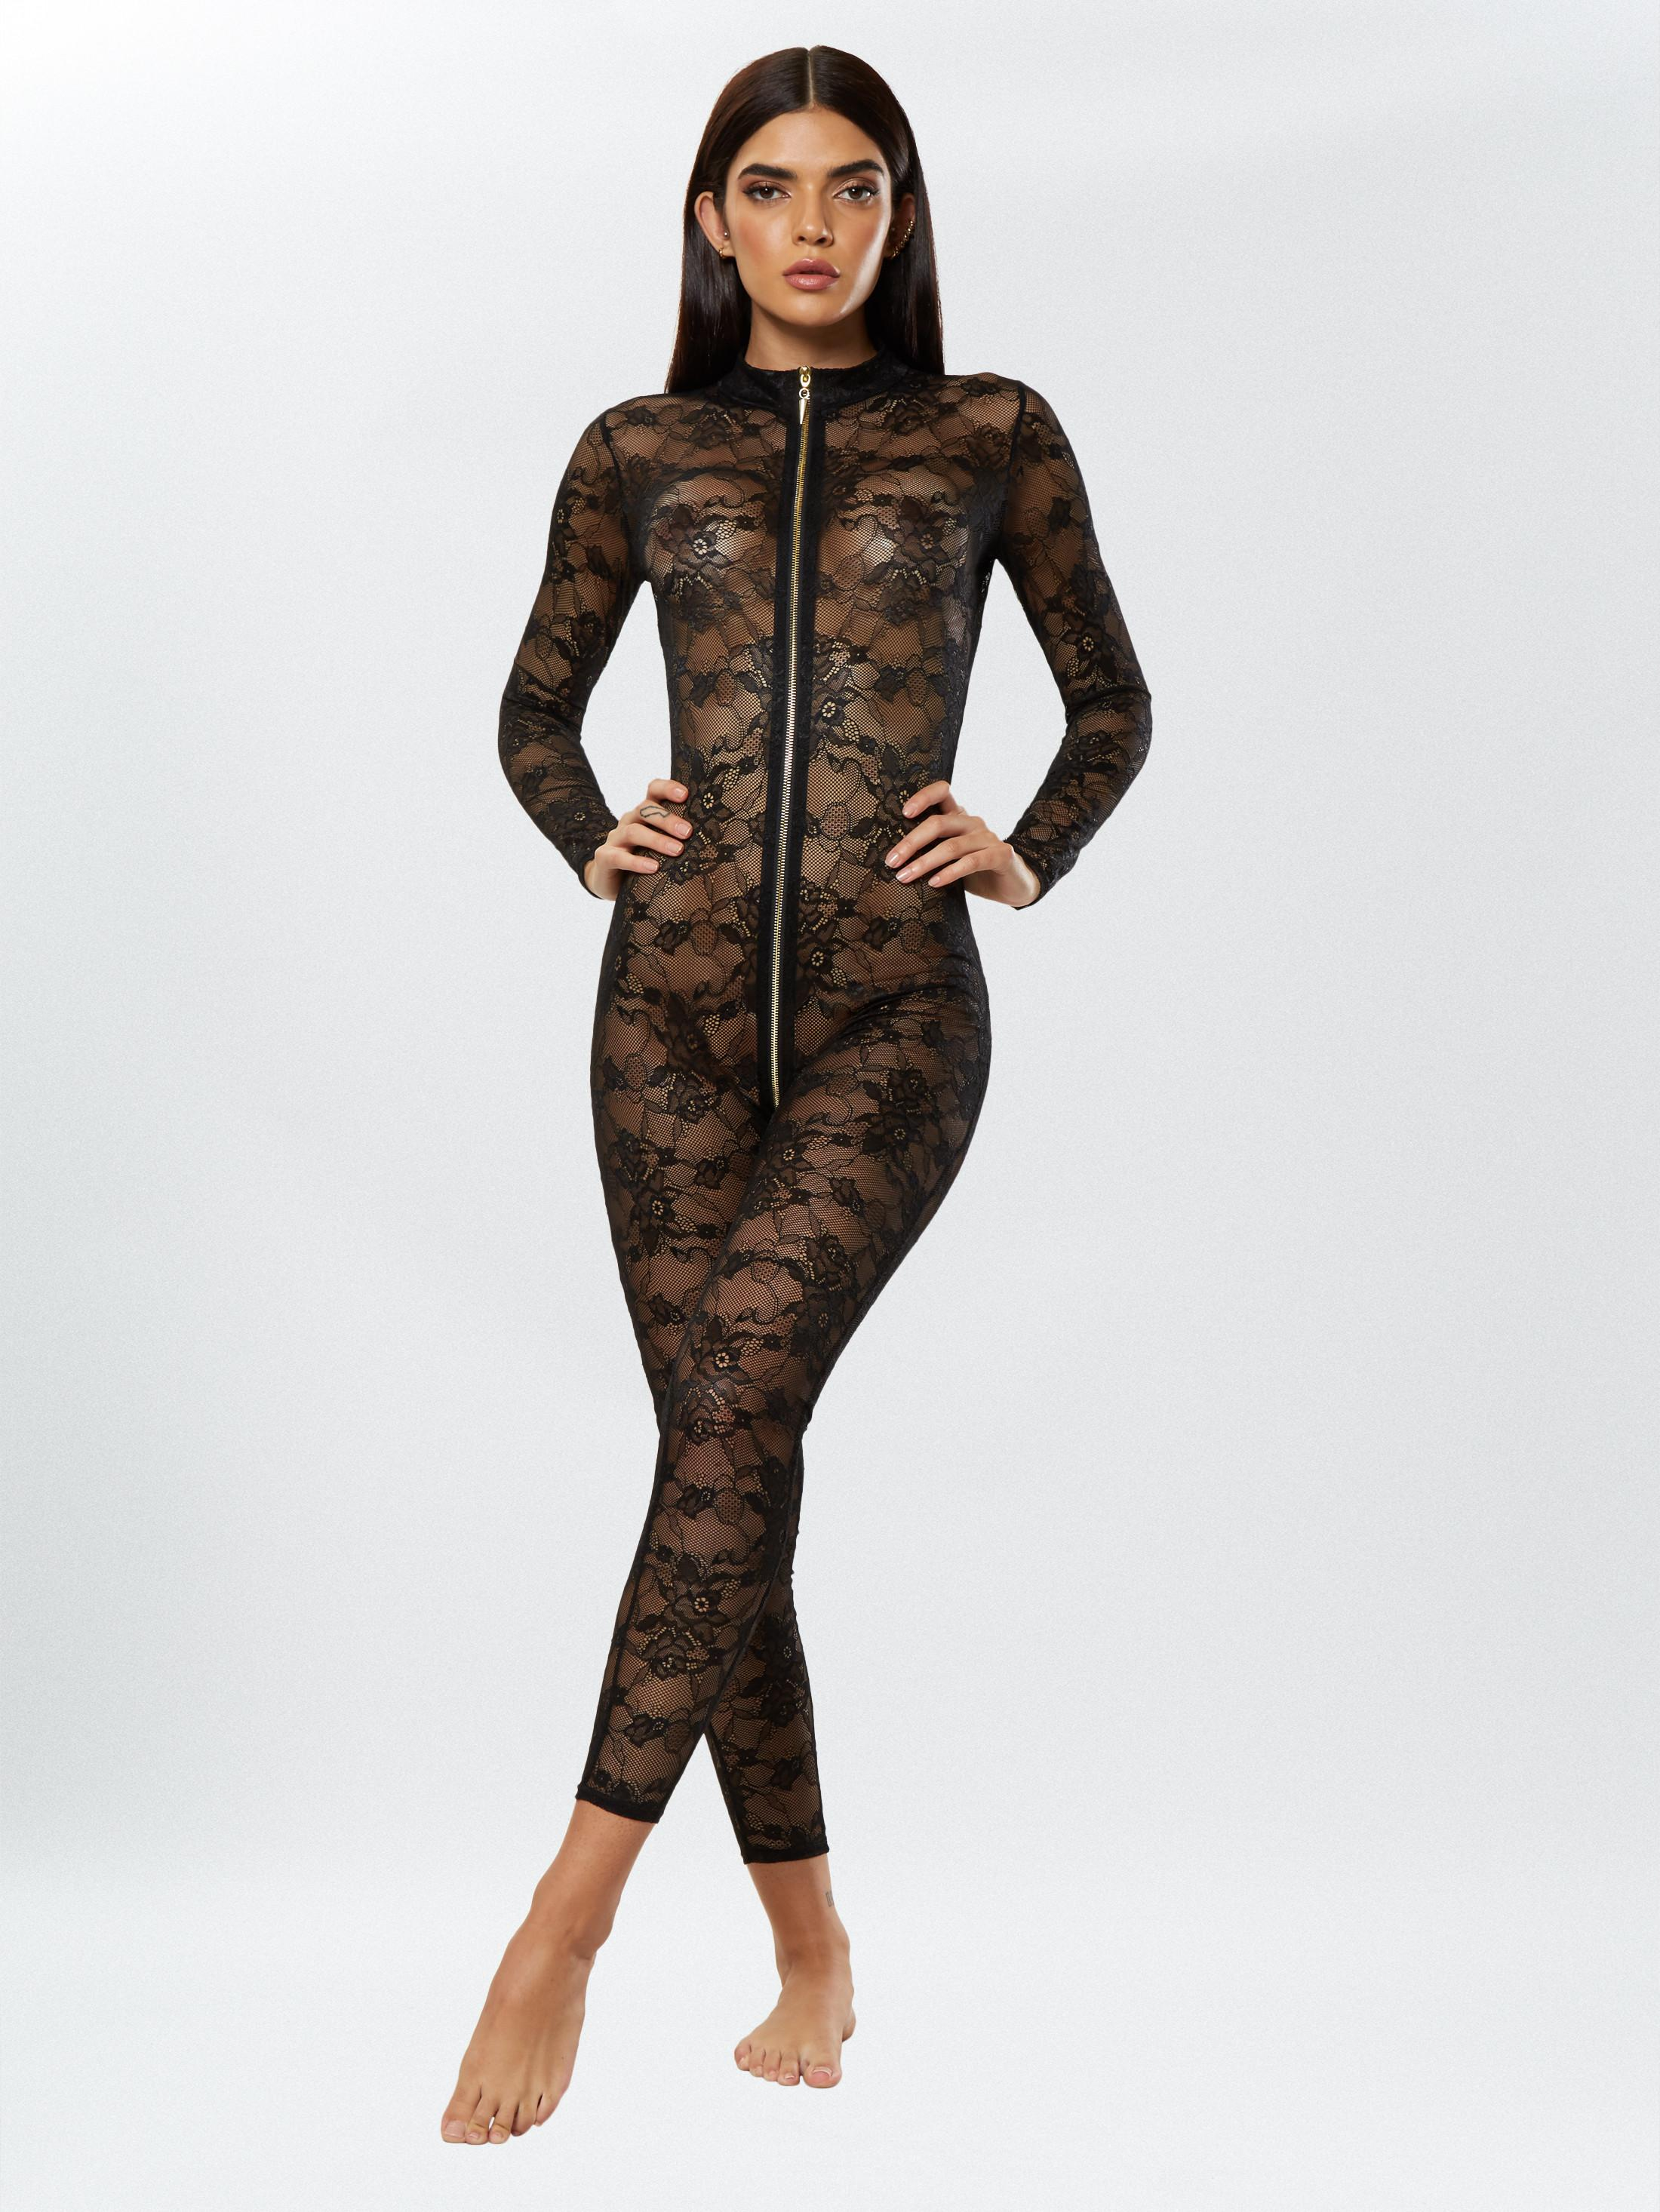 Reveal or conceal with our fashionable Sweet Fatale Bodystocking. Made with trendy sheer floral lace, the front is accentuated with a stylish gold zip that adds a luxurious finish. Cut for a high neck, wear yours in or outside of the bedroom.